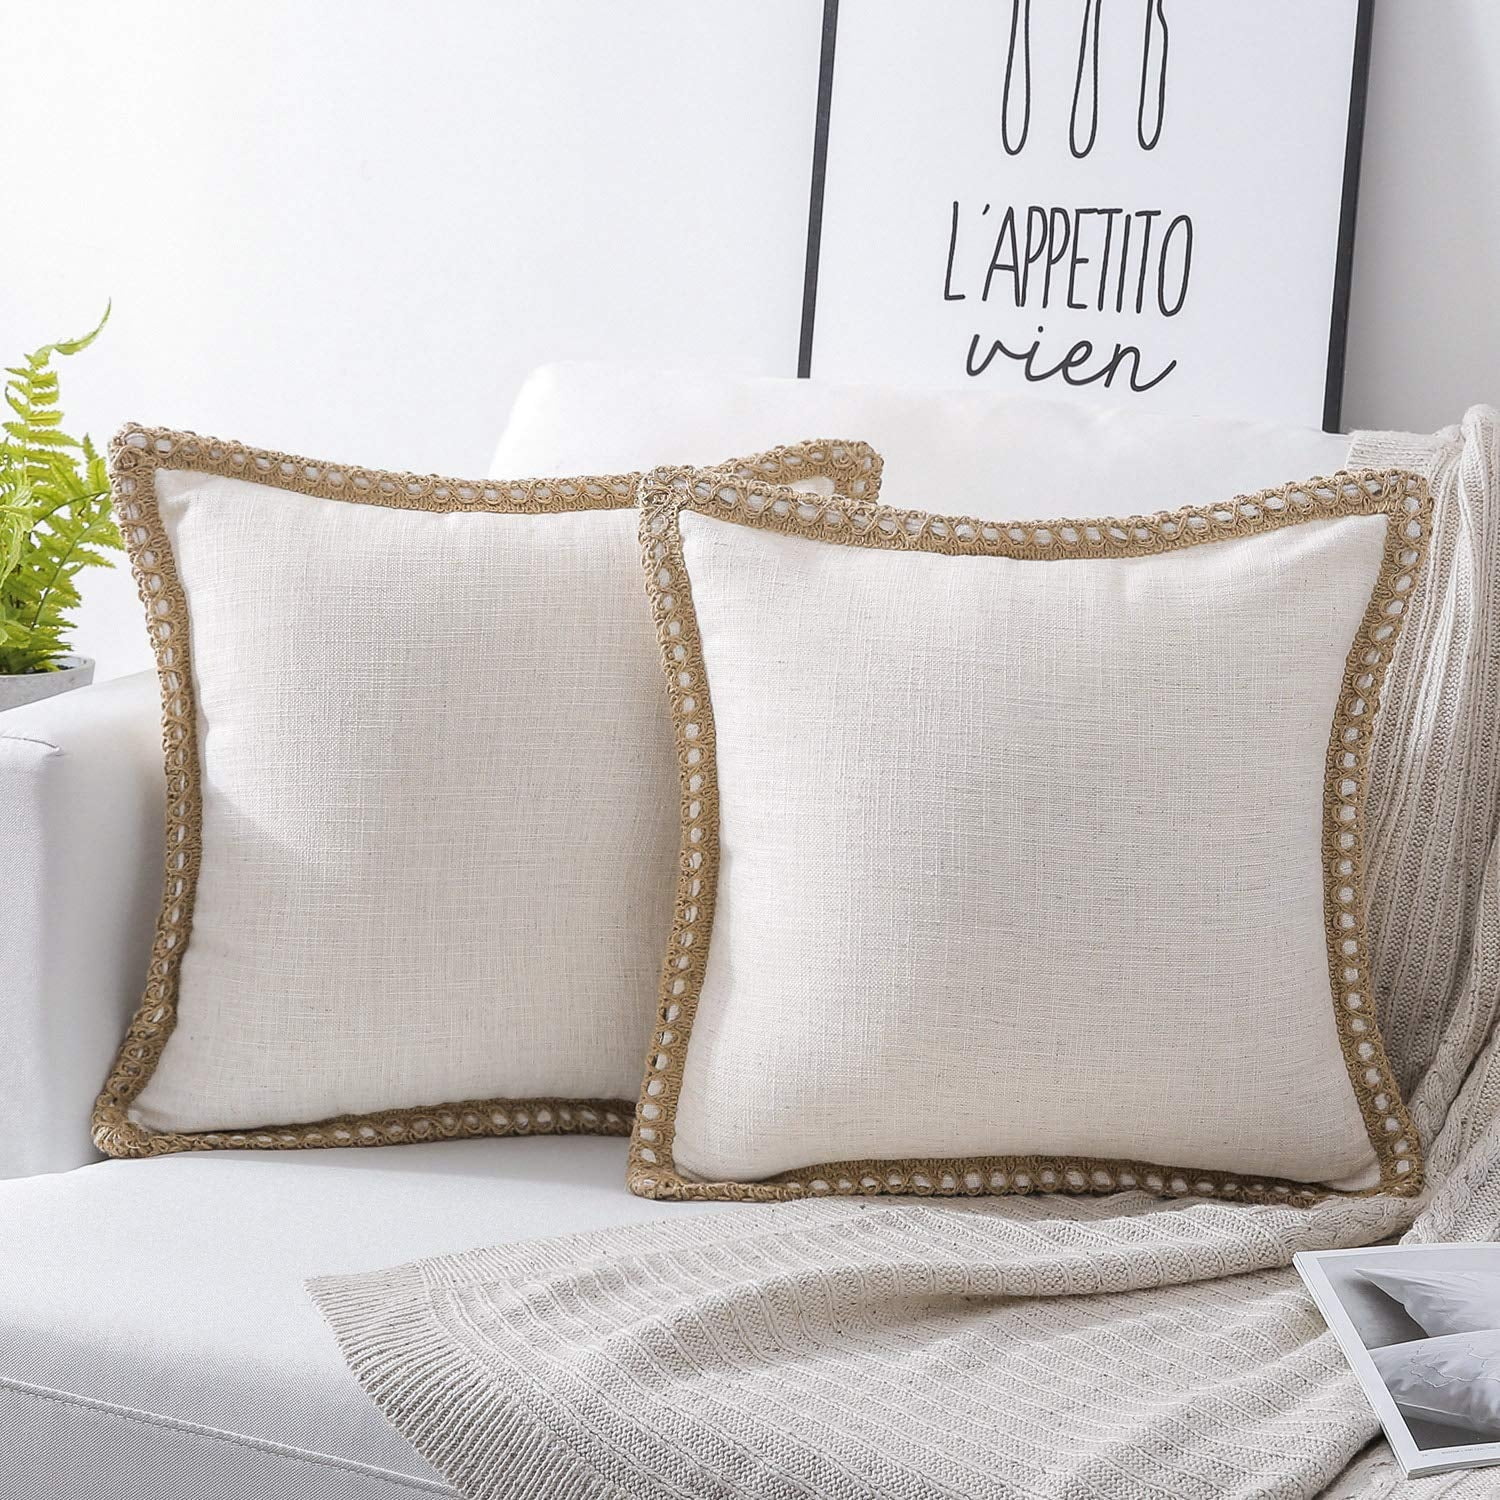 Farmhouse Decorative Throw Pillow Covers Best Modern Farmhouse Decor To Buy On Amazon Popsugar Home Uk Photo 17